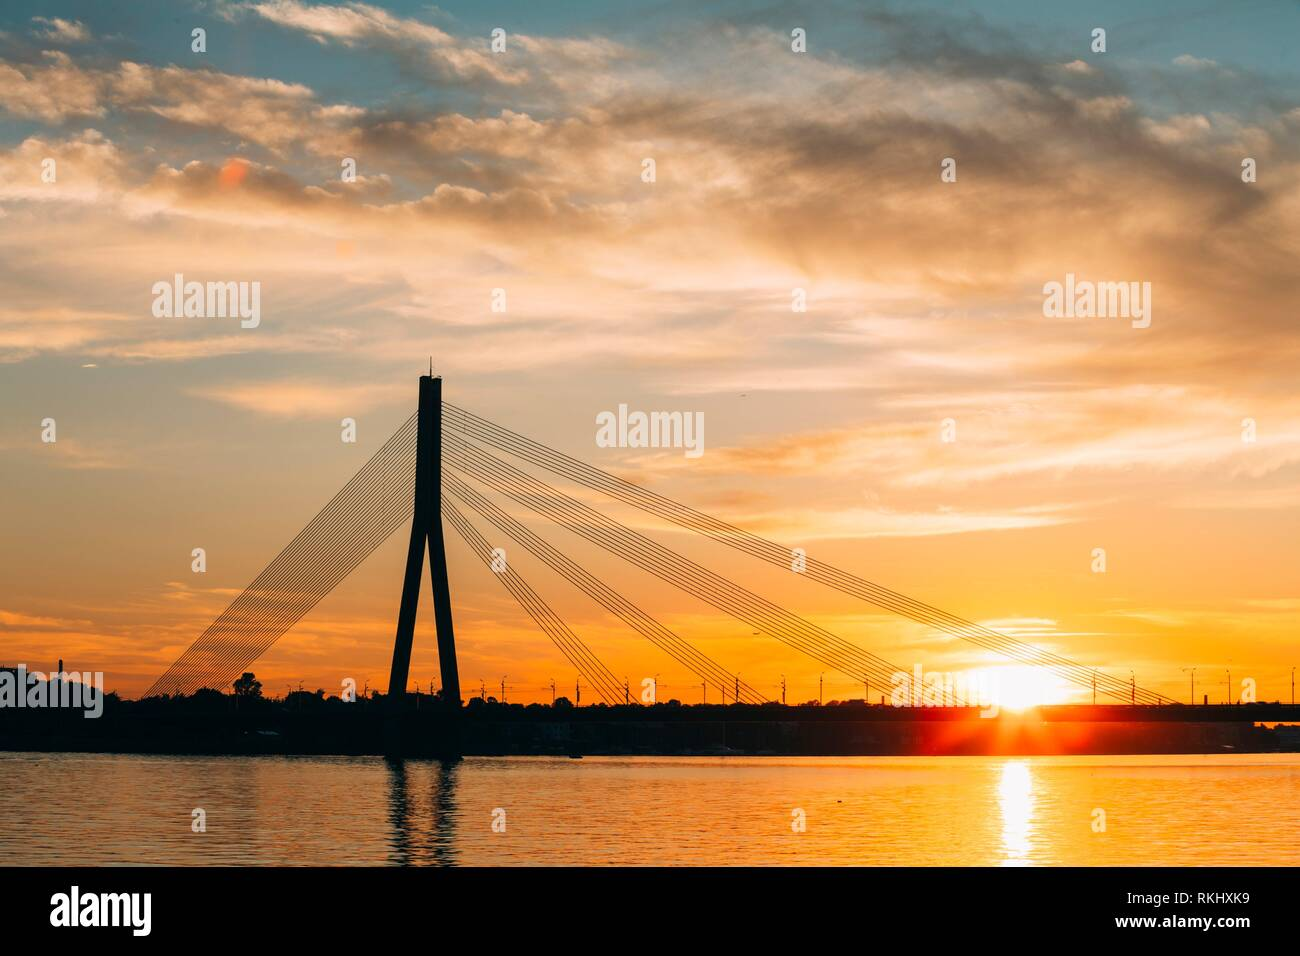 Riga, Latvia. Scenic View Of Vansu Cable-Stayed Bridge Over The Daugava River, Western Dvina In Bright Sunset Or Sunrise Time. Stock Photo